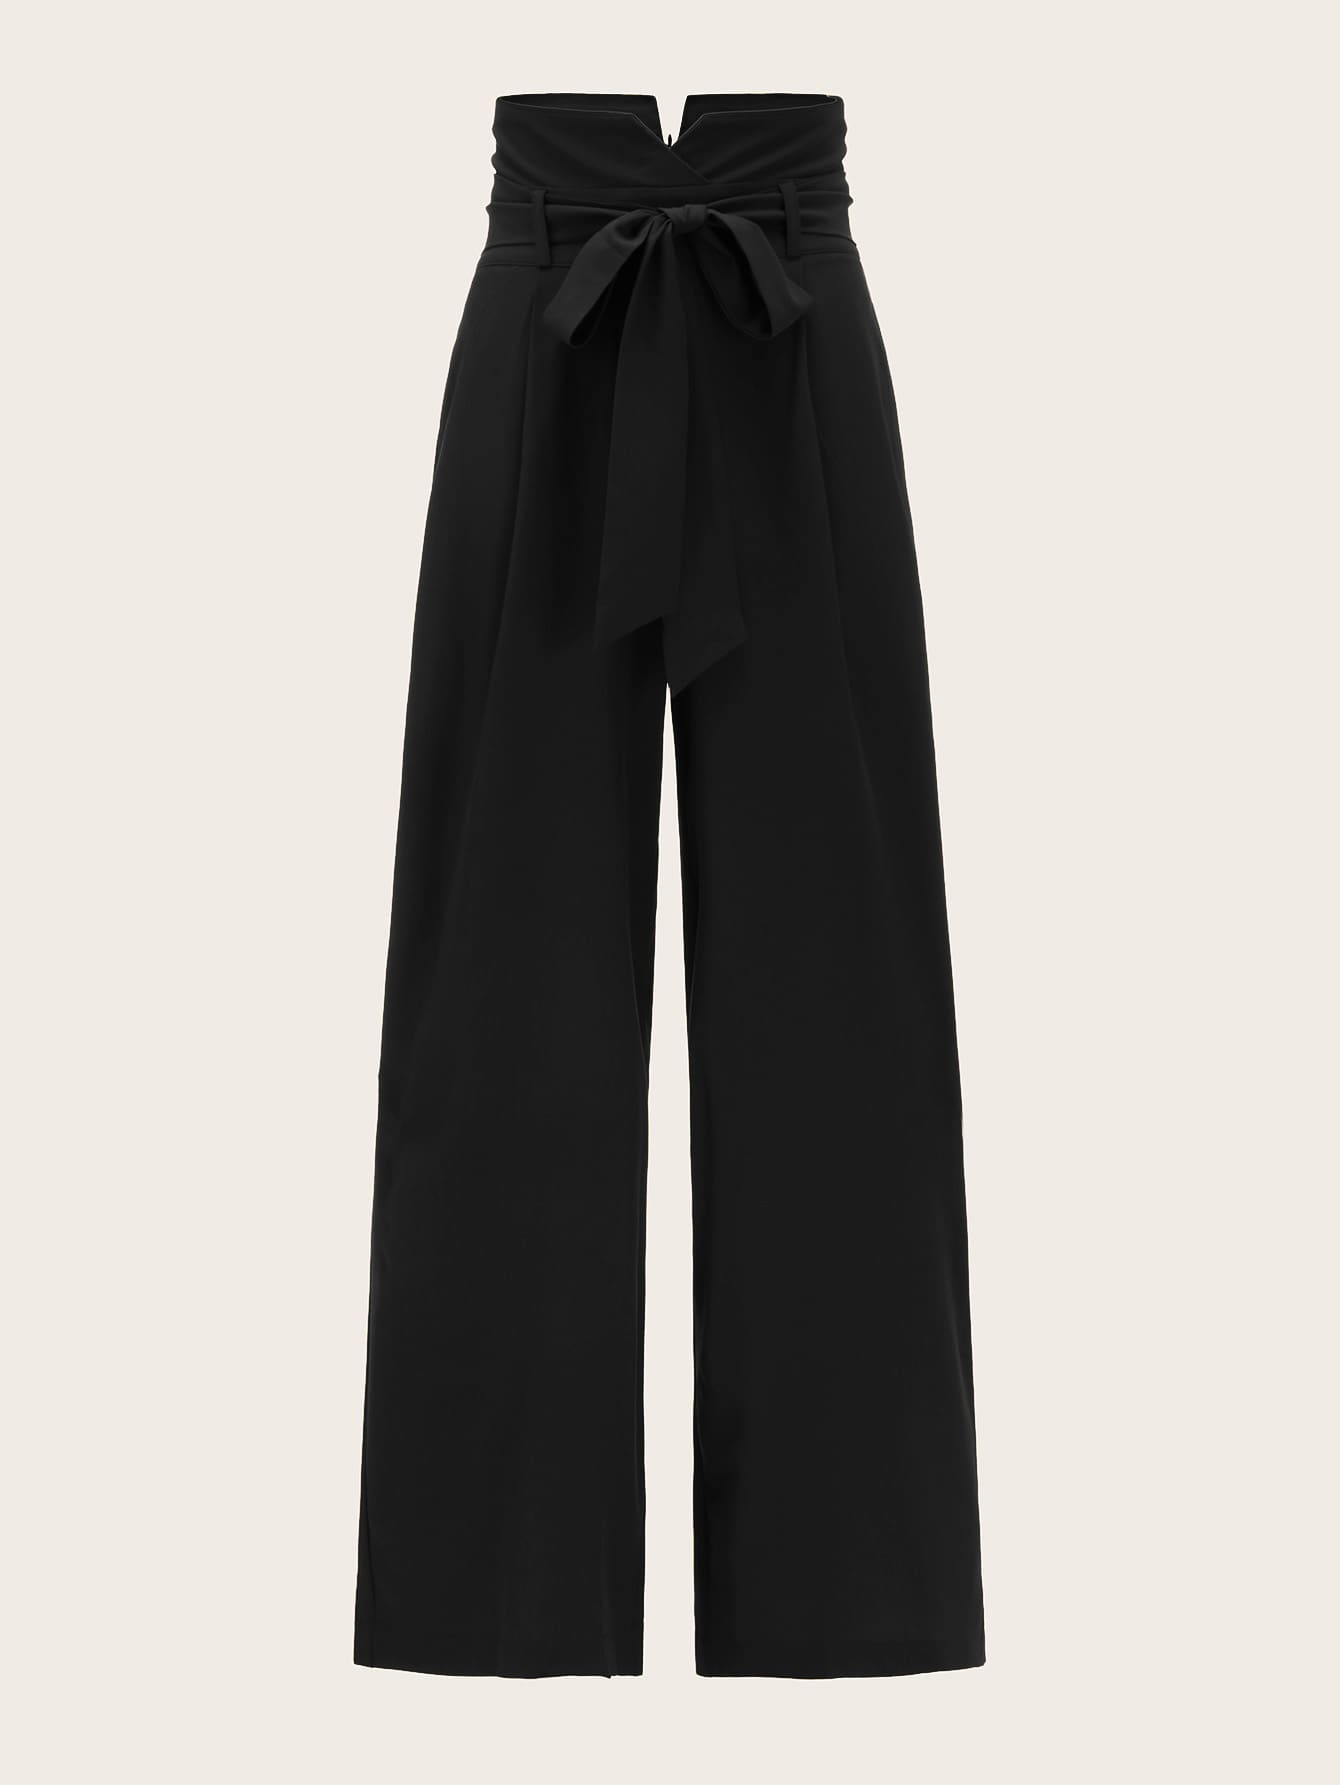 Foldover Waist Self Belted Palazzo Trousers-Vintage-Trendy-JayBoutique-color 1-XS-Trendy-JayBoutique